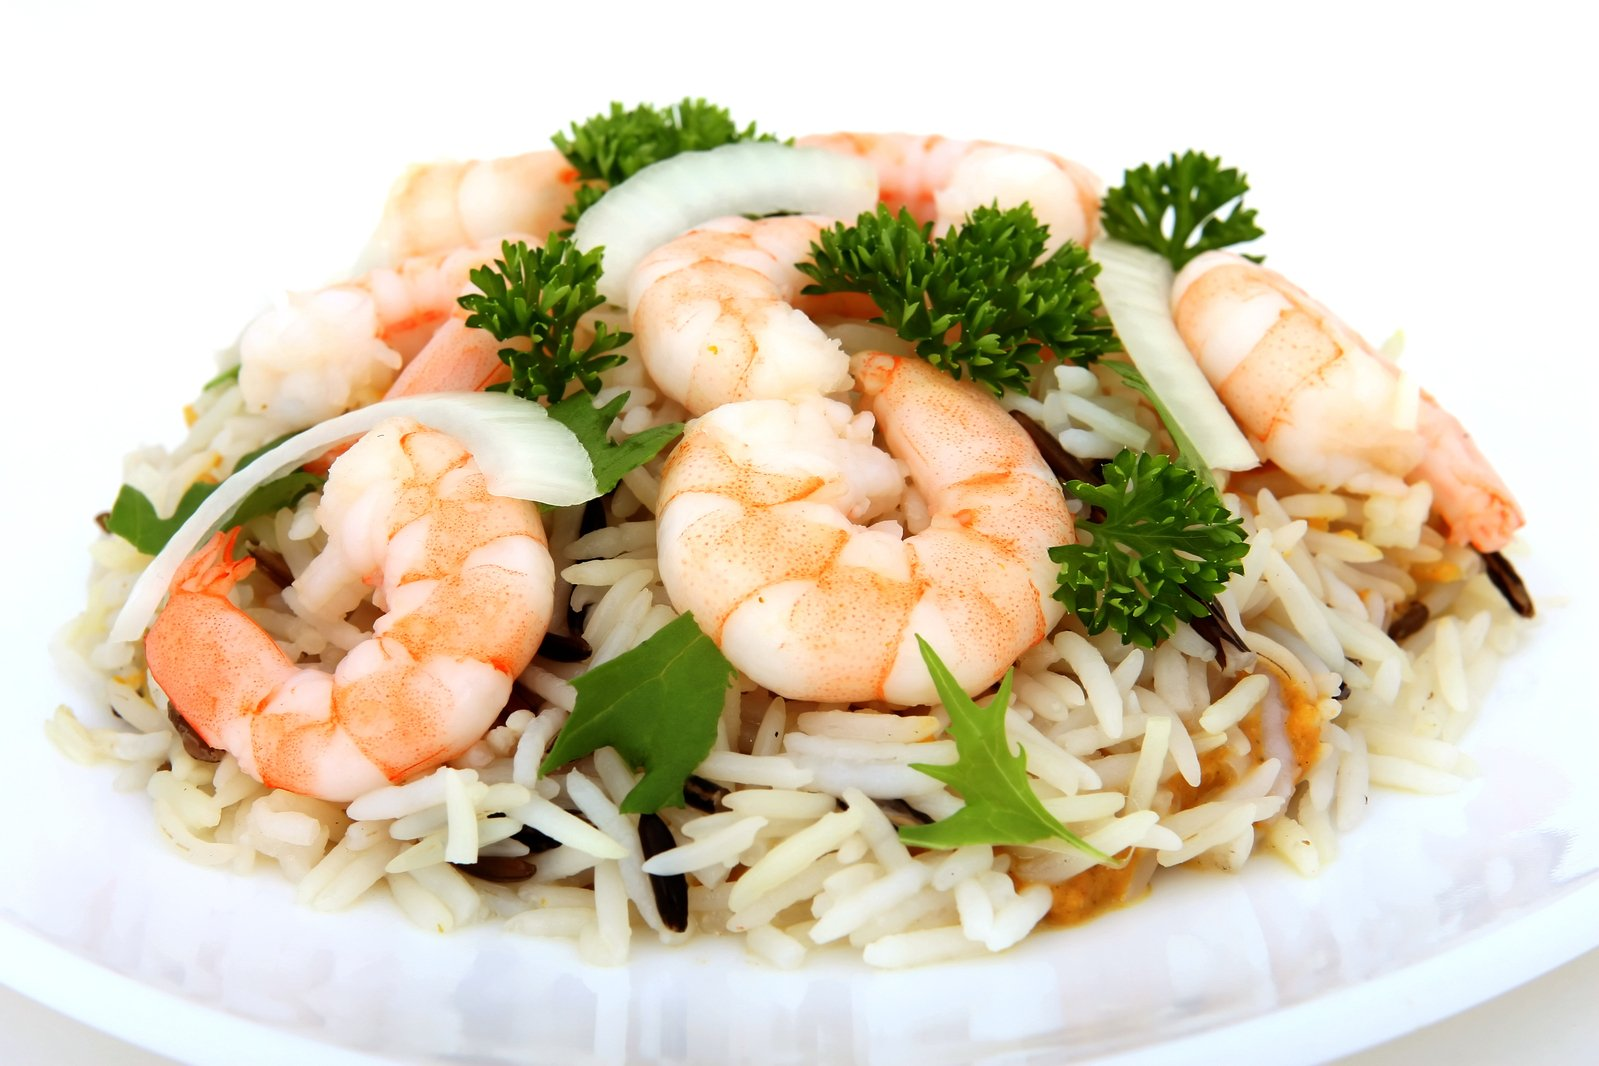 Prawn and rice salad